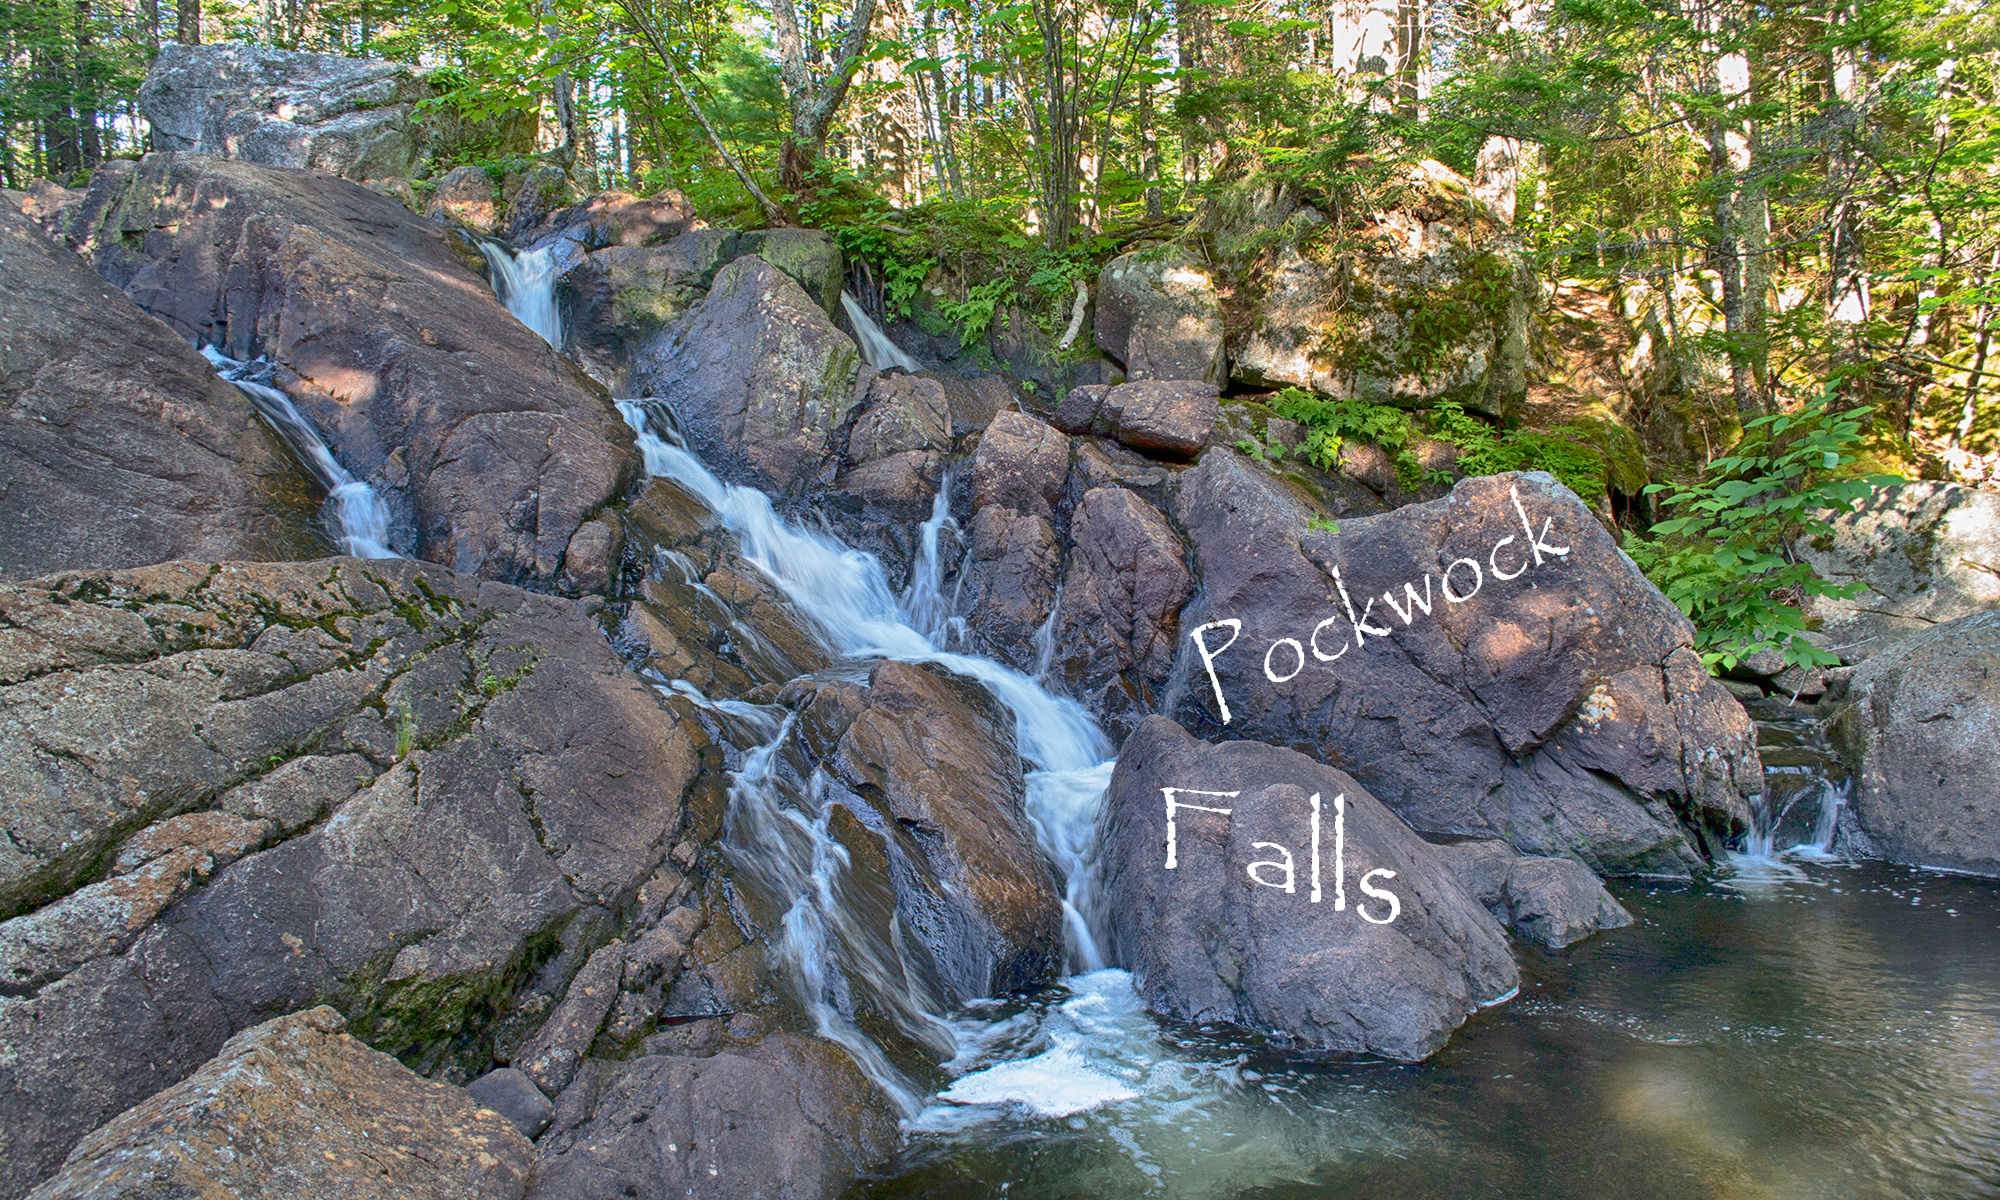 Pockwock Falls